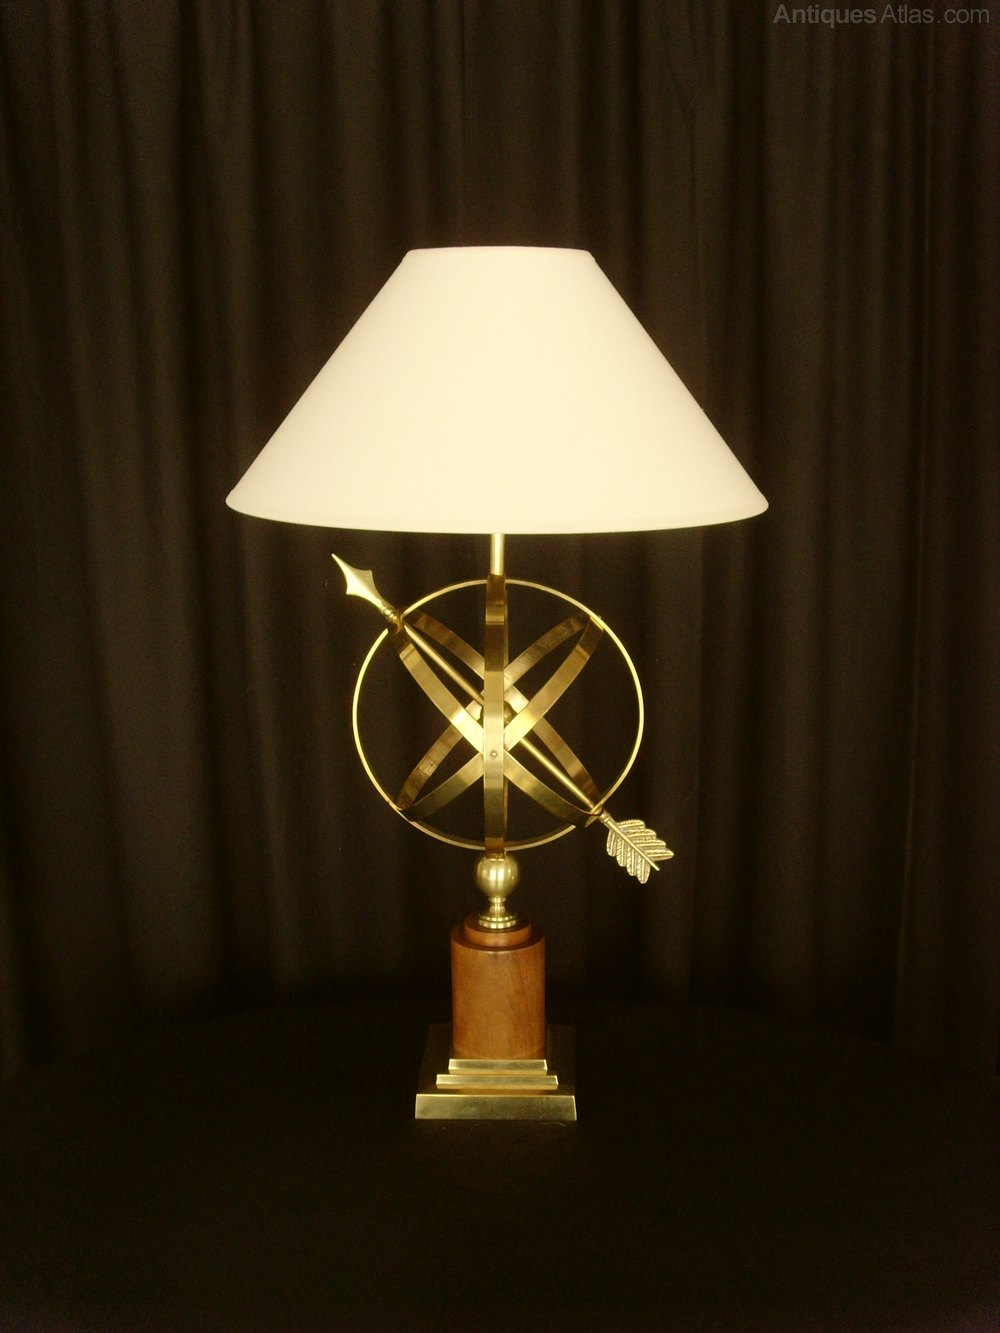 Antiques Atlas Brass Armillary Sphere Table Lamp Amp Shade